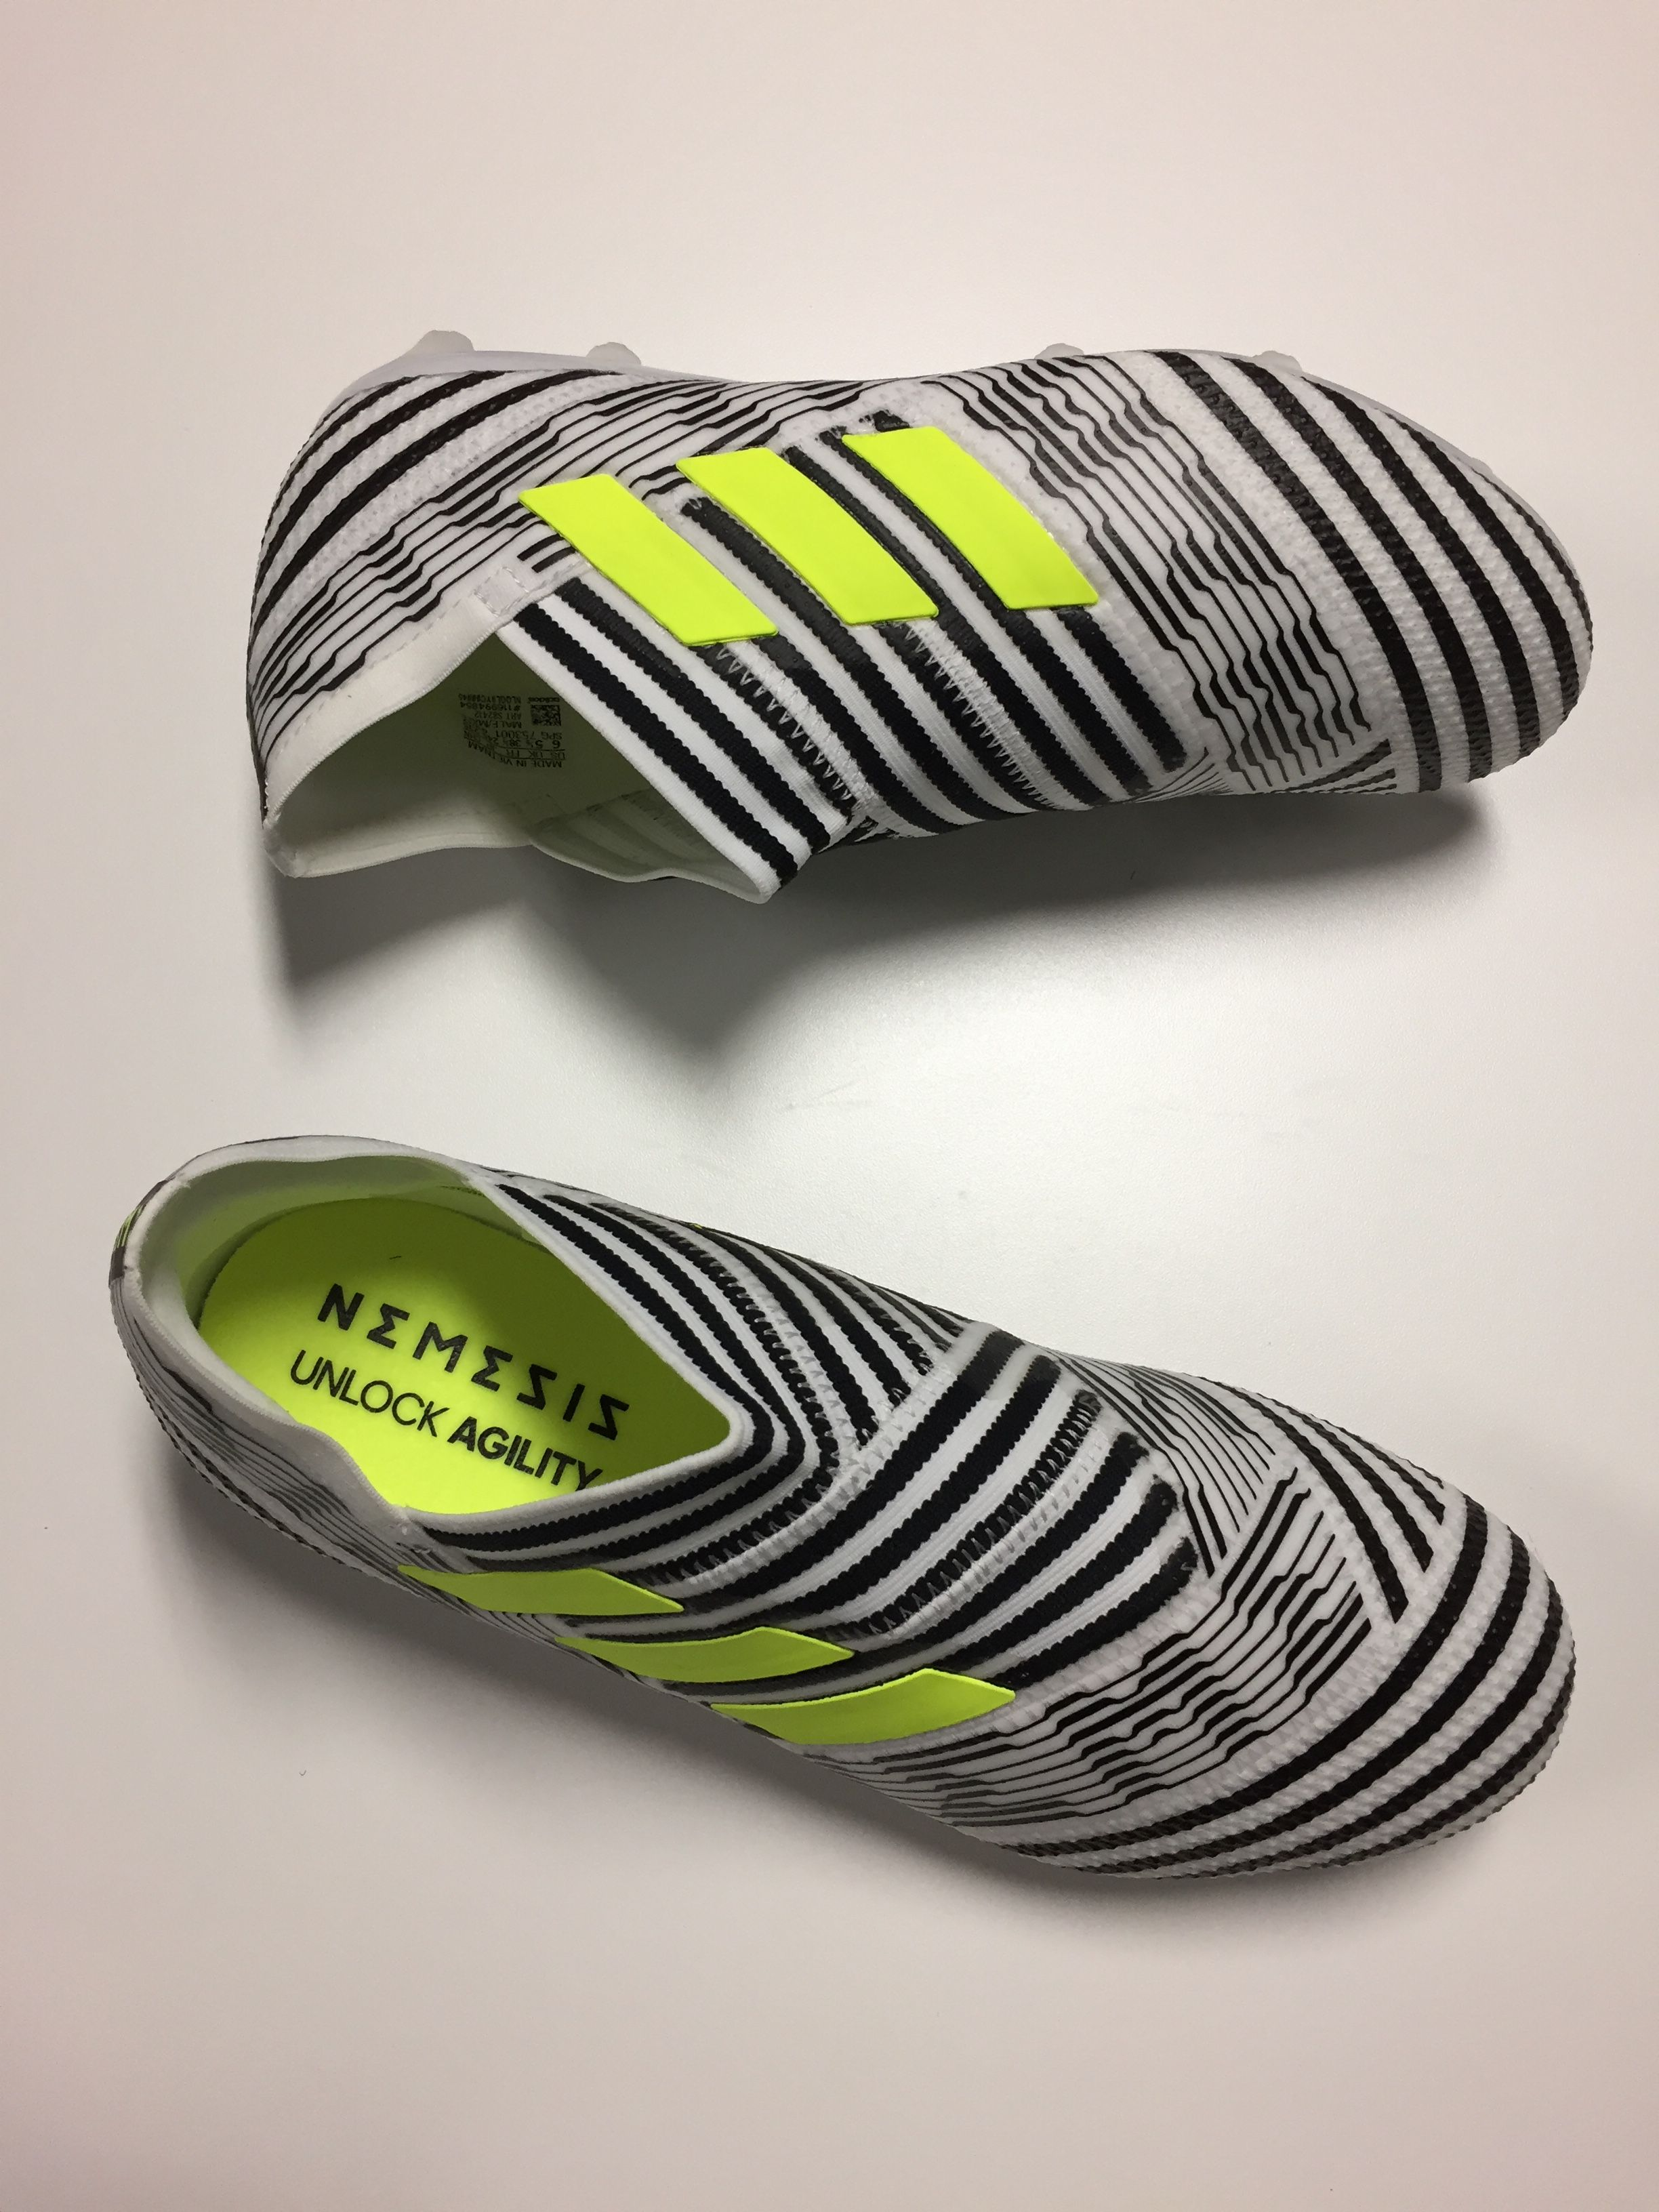 Pin by SoccerPro on adidas Nemeziz   Pinterest   Football boots ... 2da021c0d1b